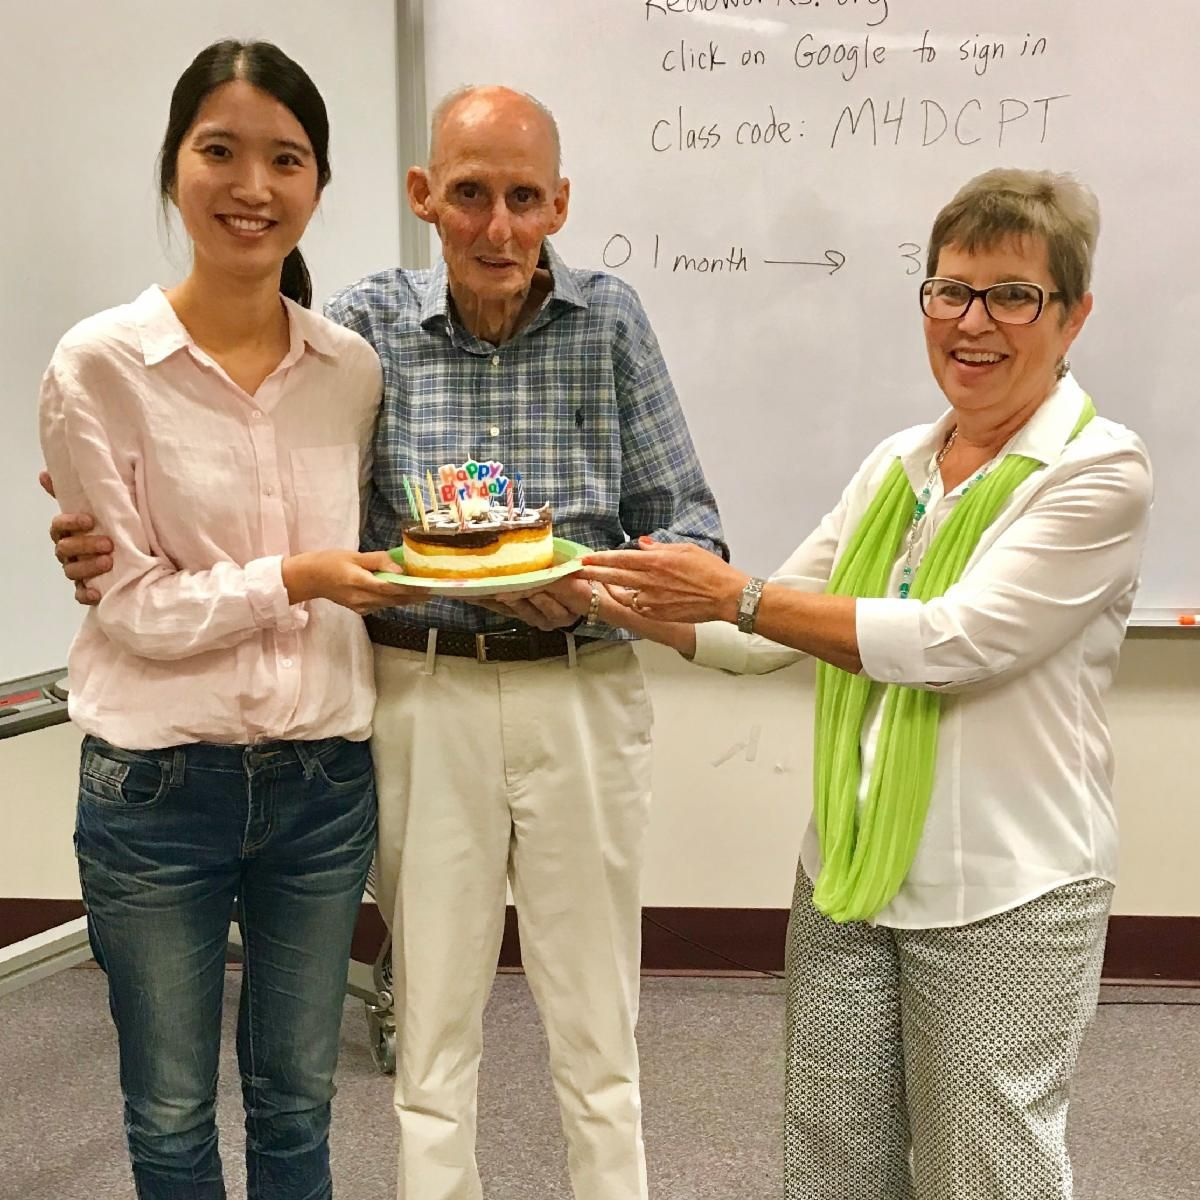 Three people smiling and holding a cake